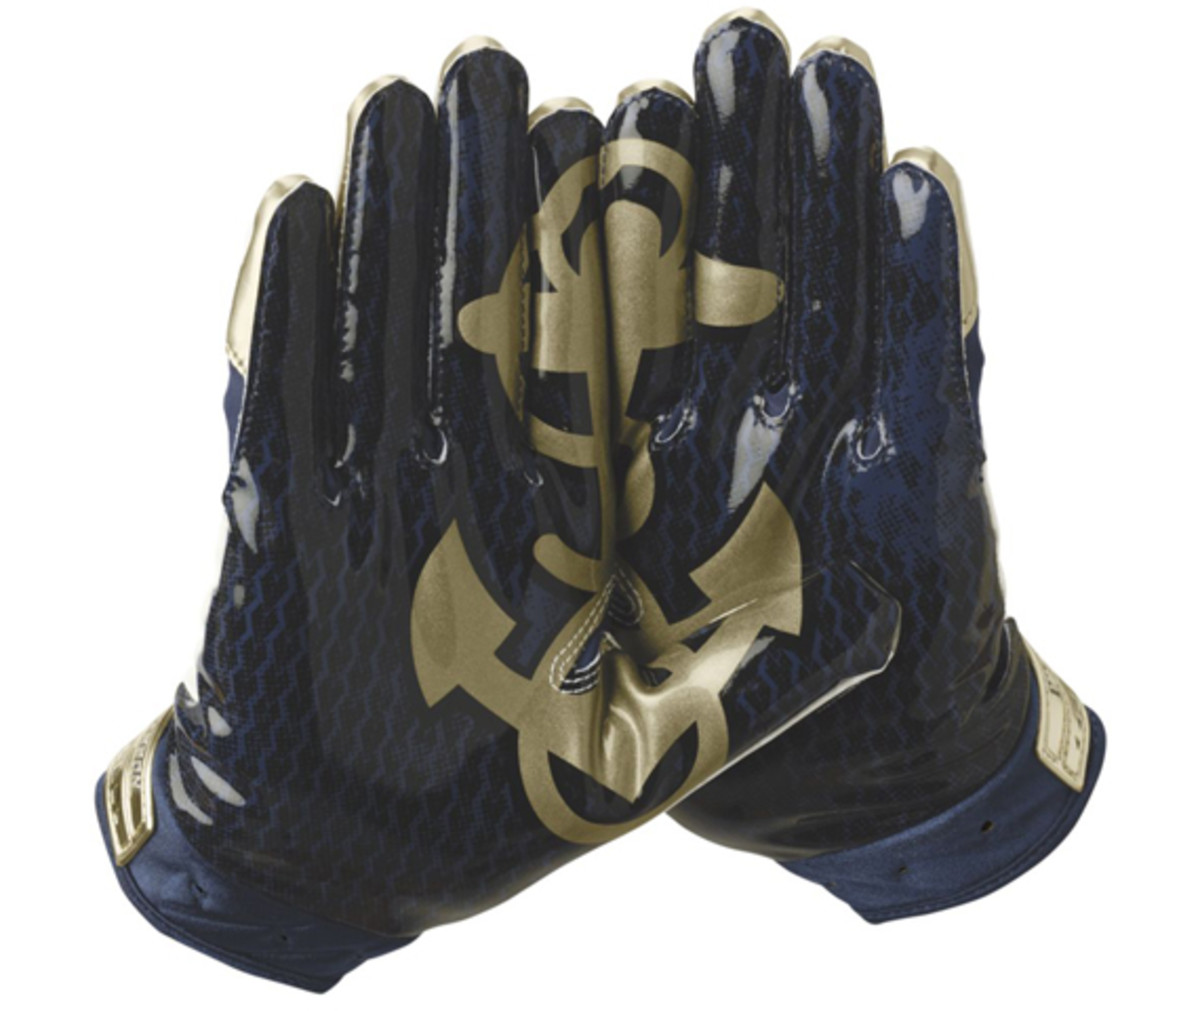 Nike-College-Rivalry-Vapor-Jet-Football-Gloves-03